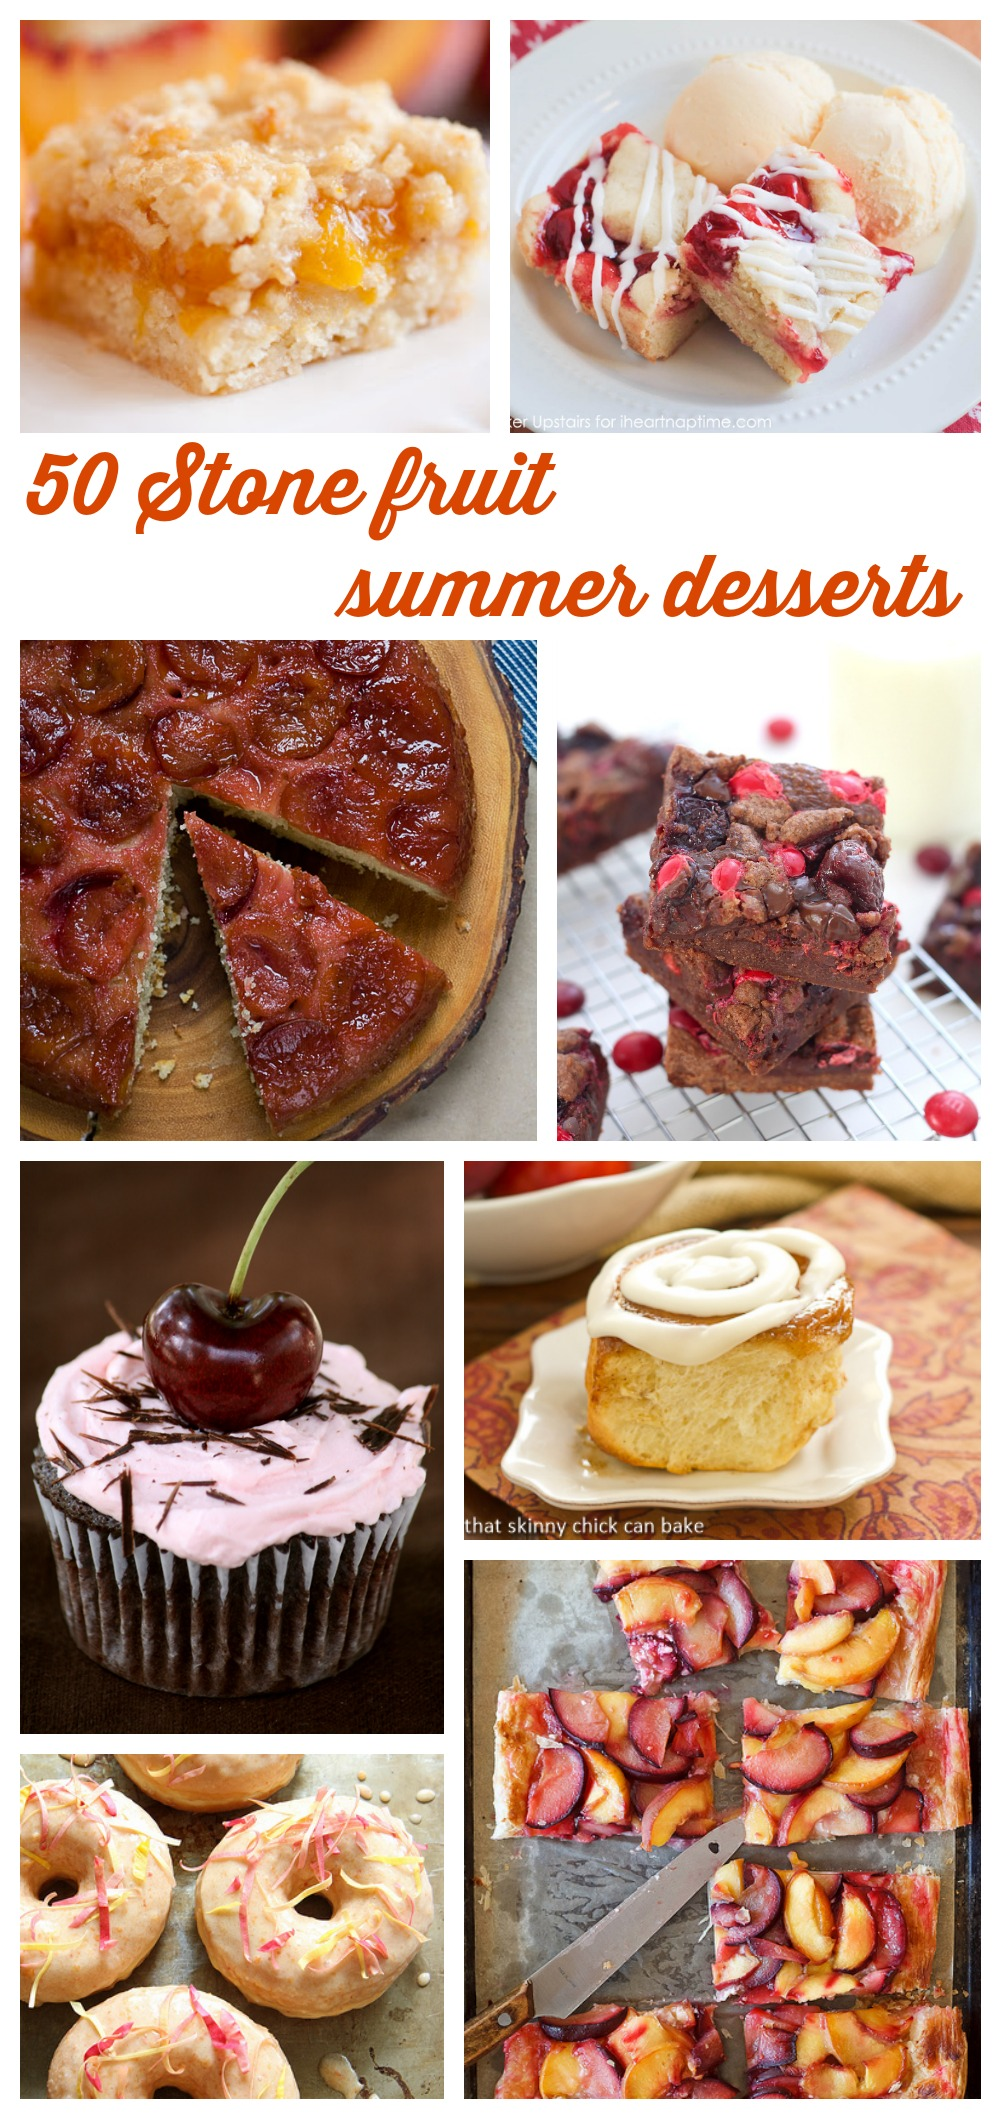 50 Stone fruit summer desserts